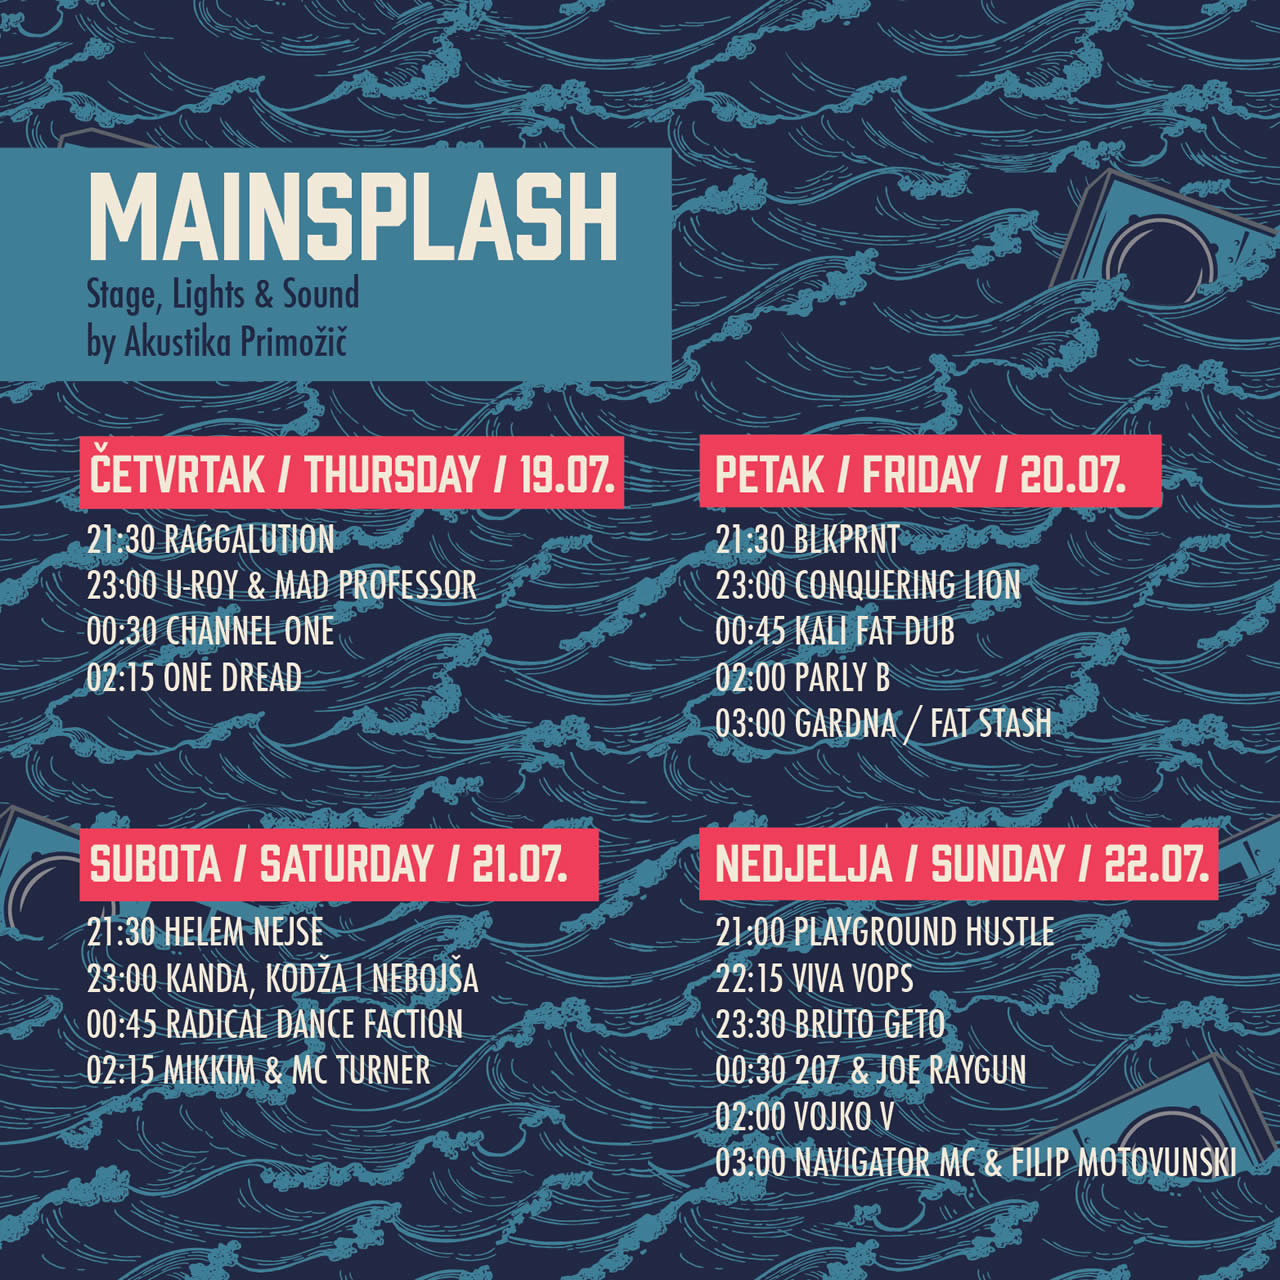 MainSplash 2018 Schedule